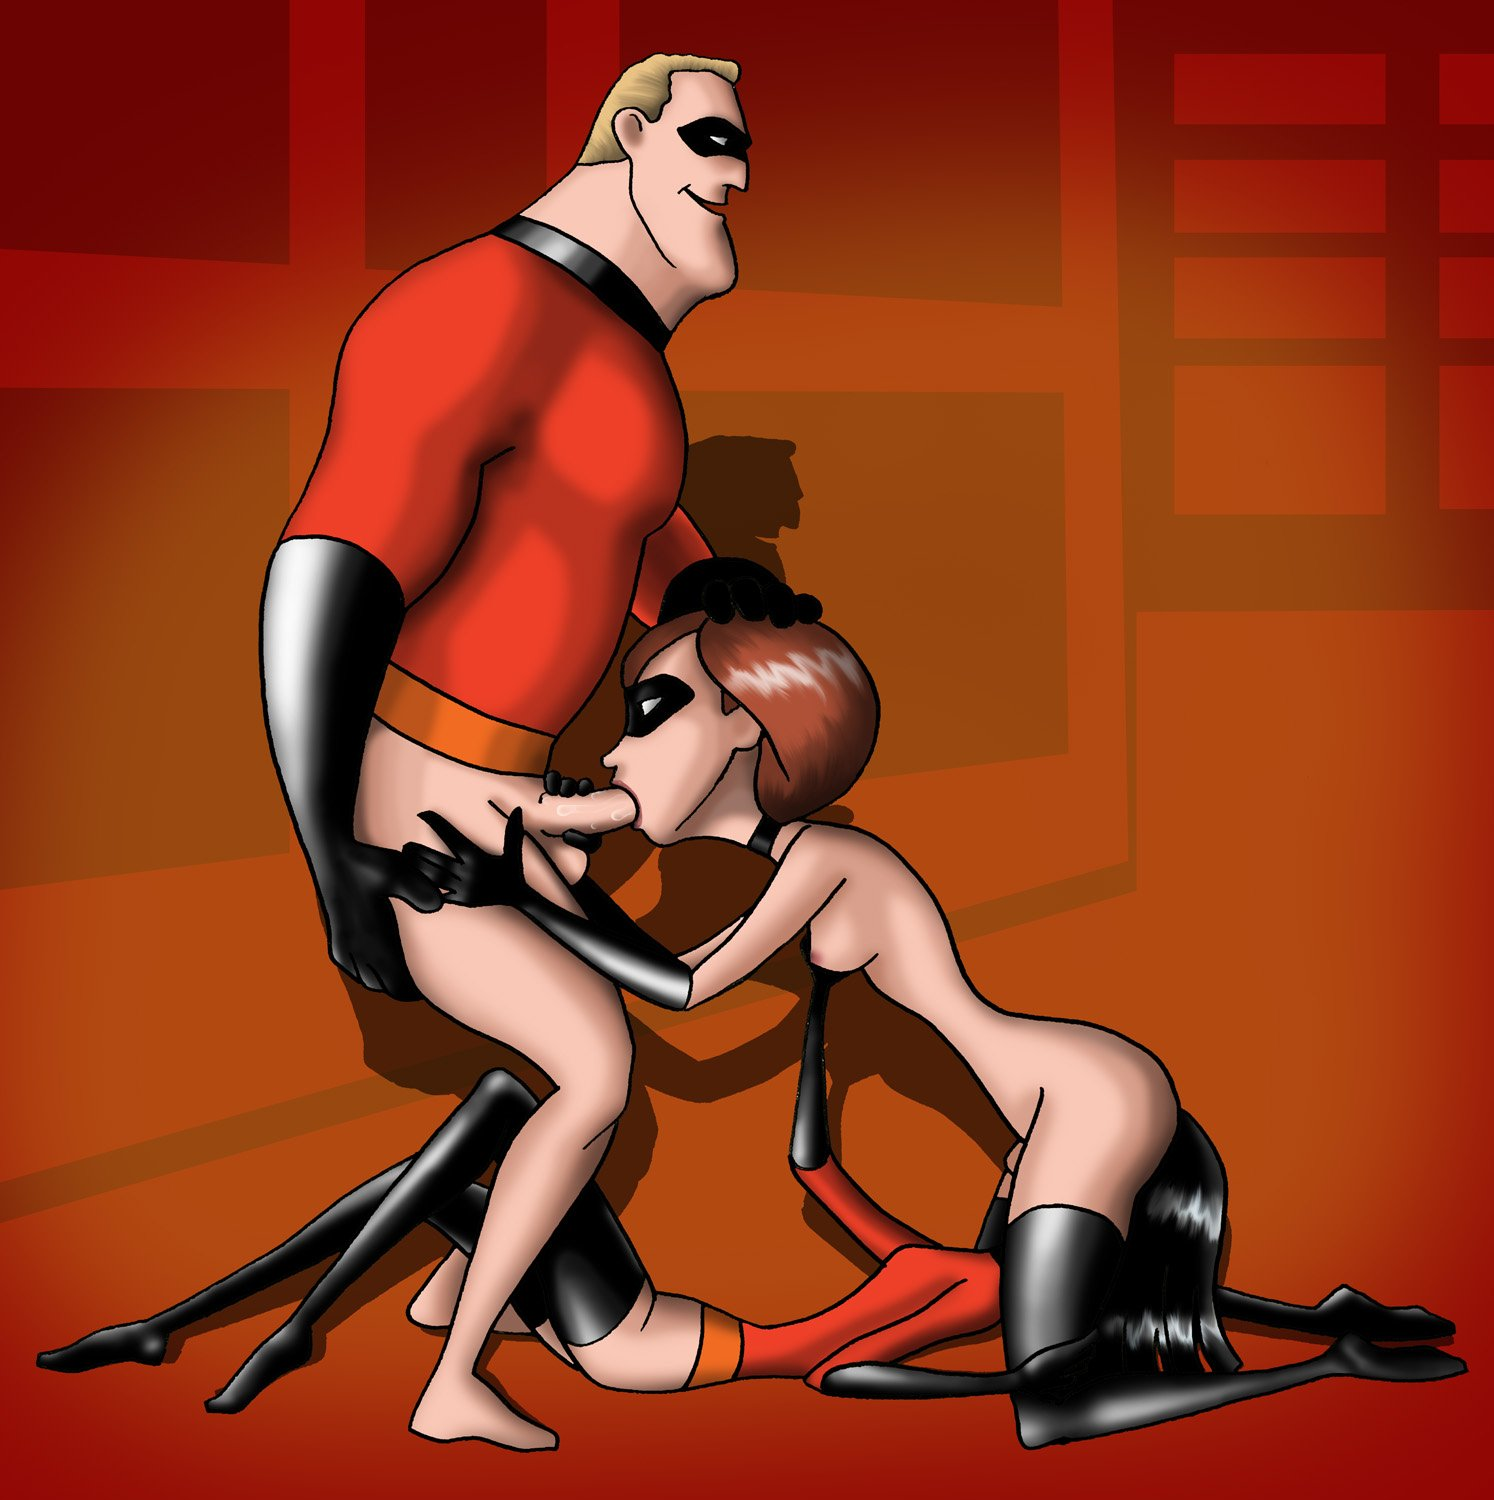 incredibles-sex-pics